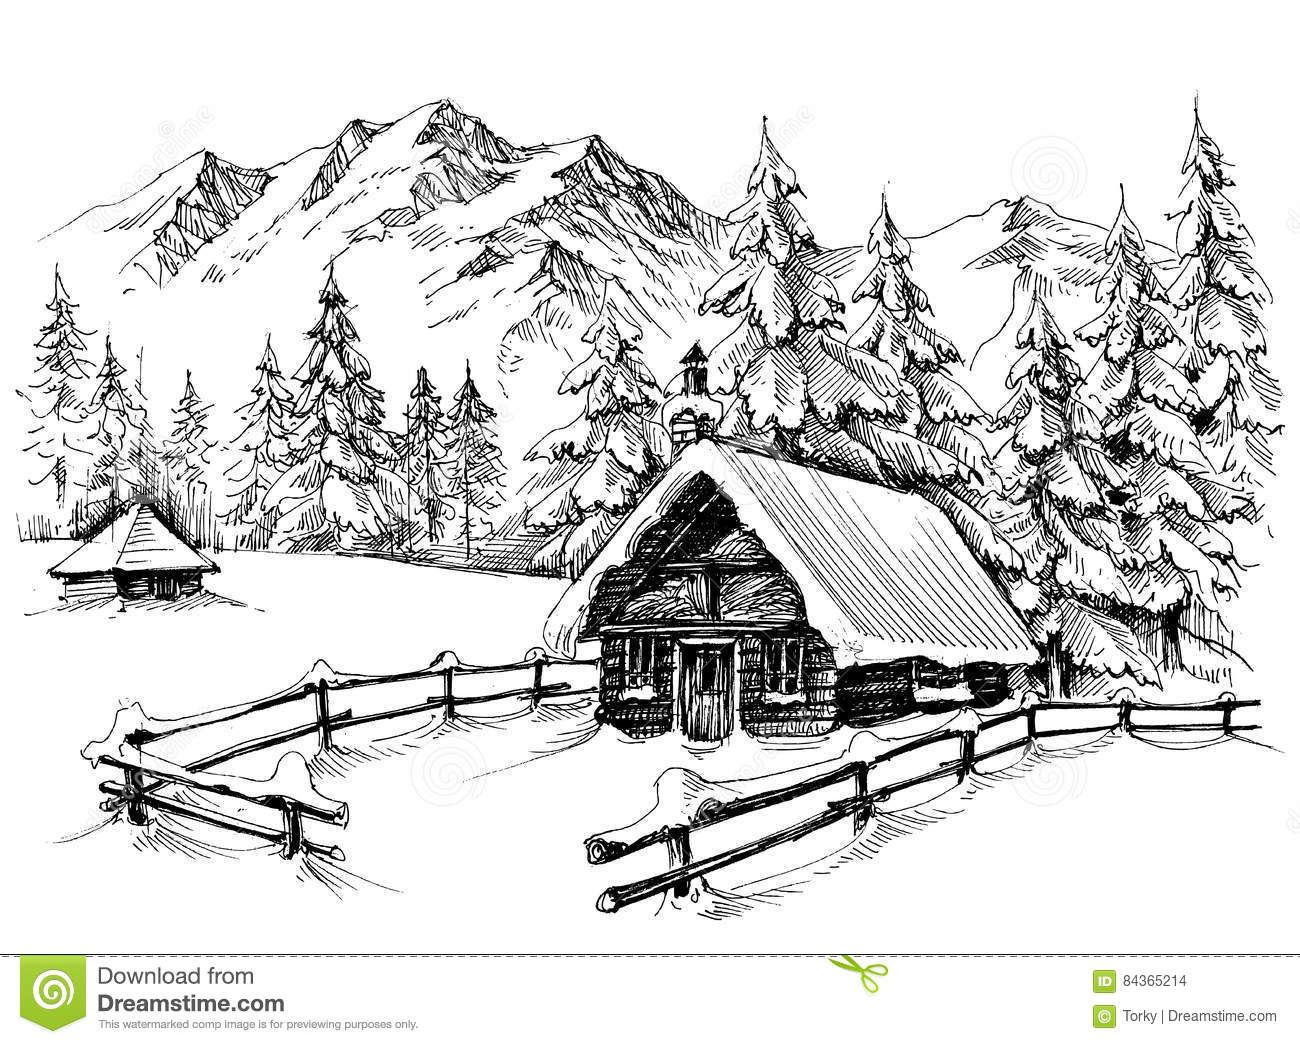 Cabin clipart mountain cabin. Download winter drawing stock